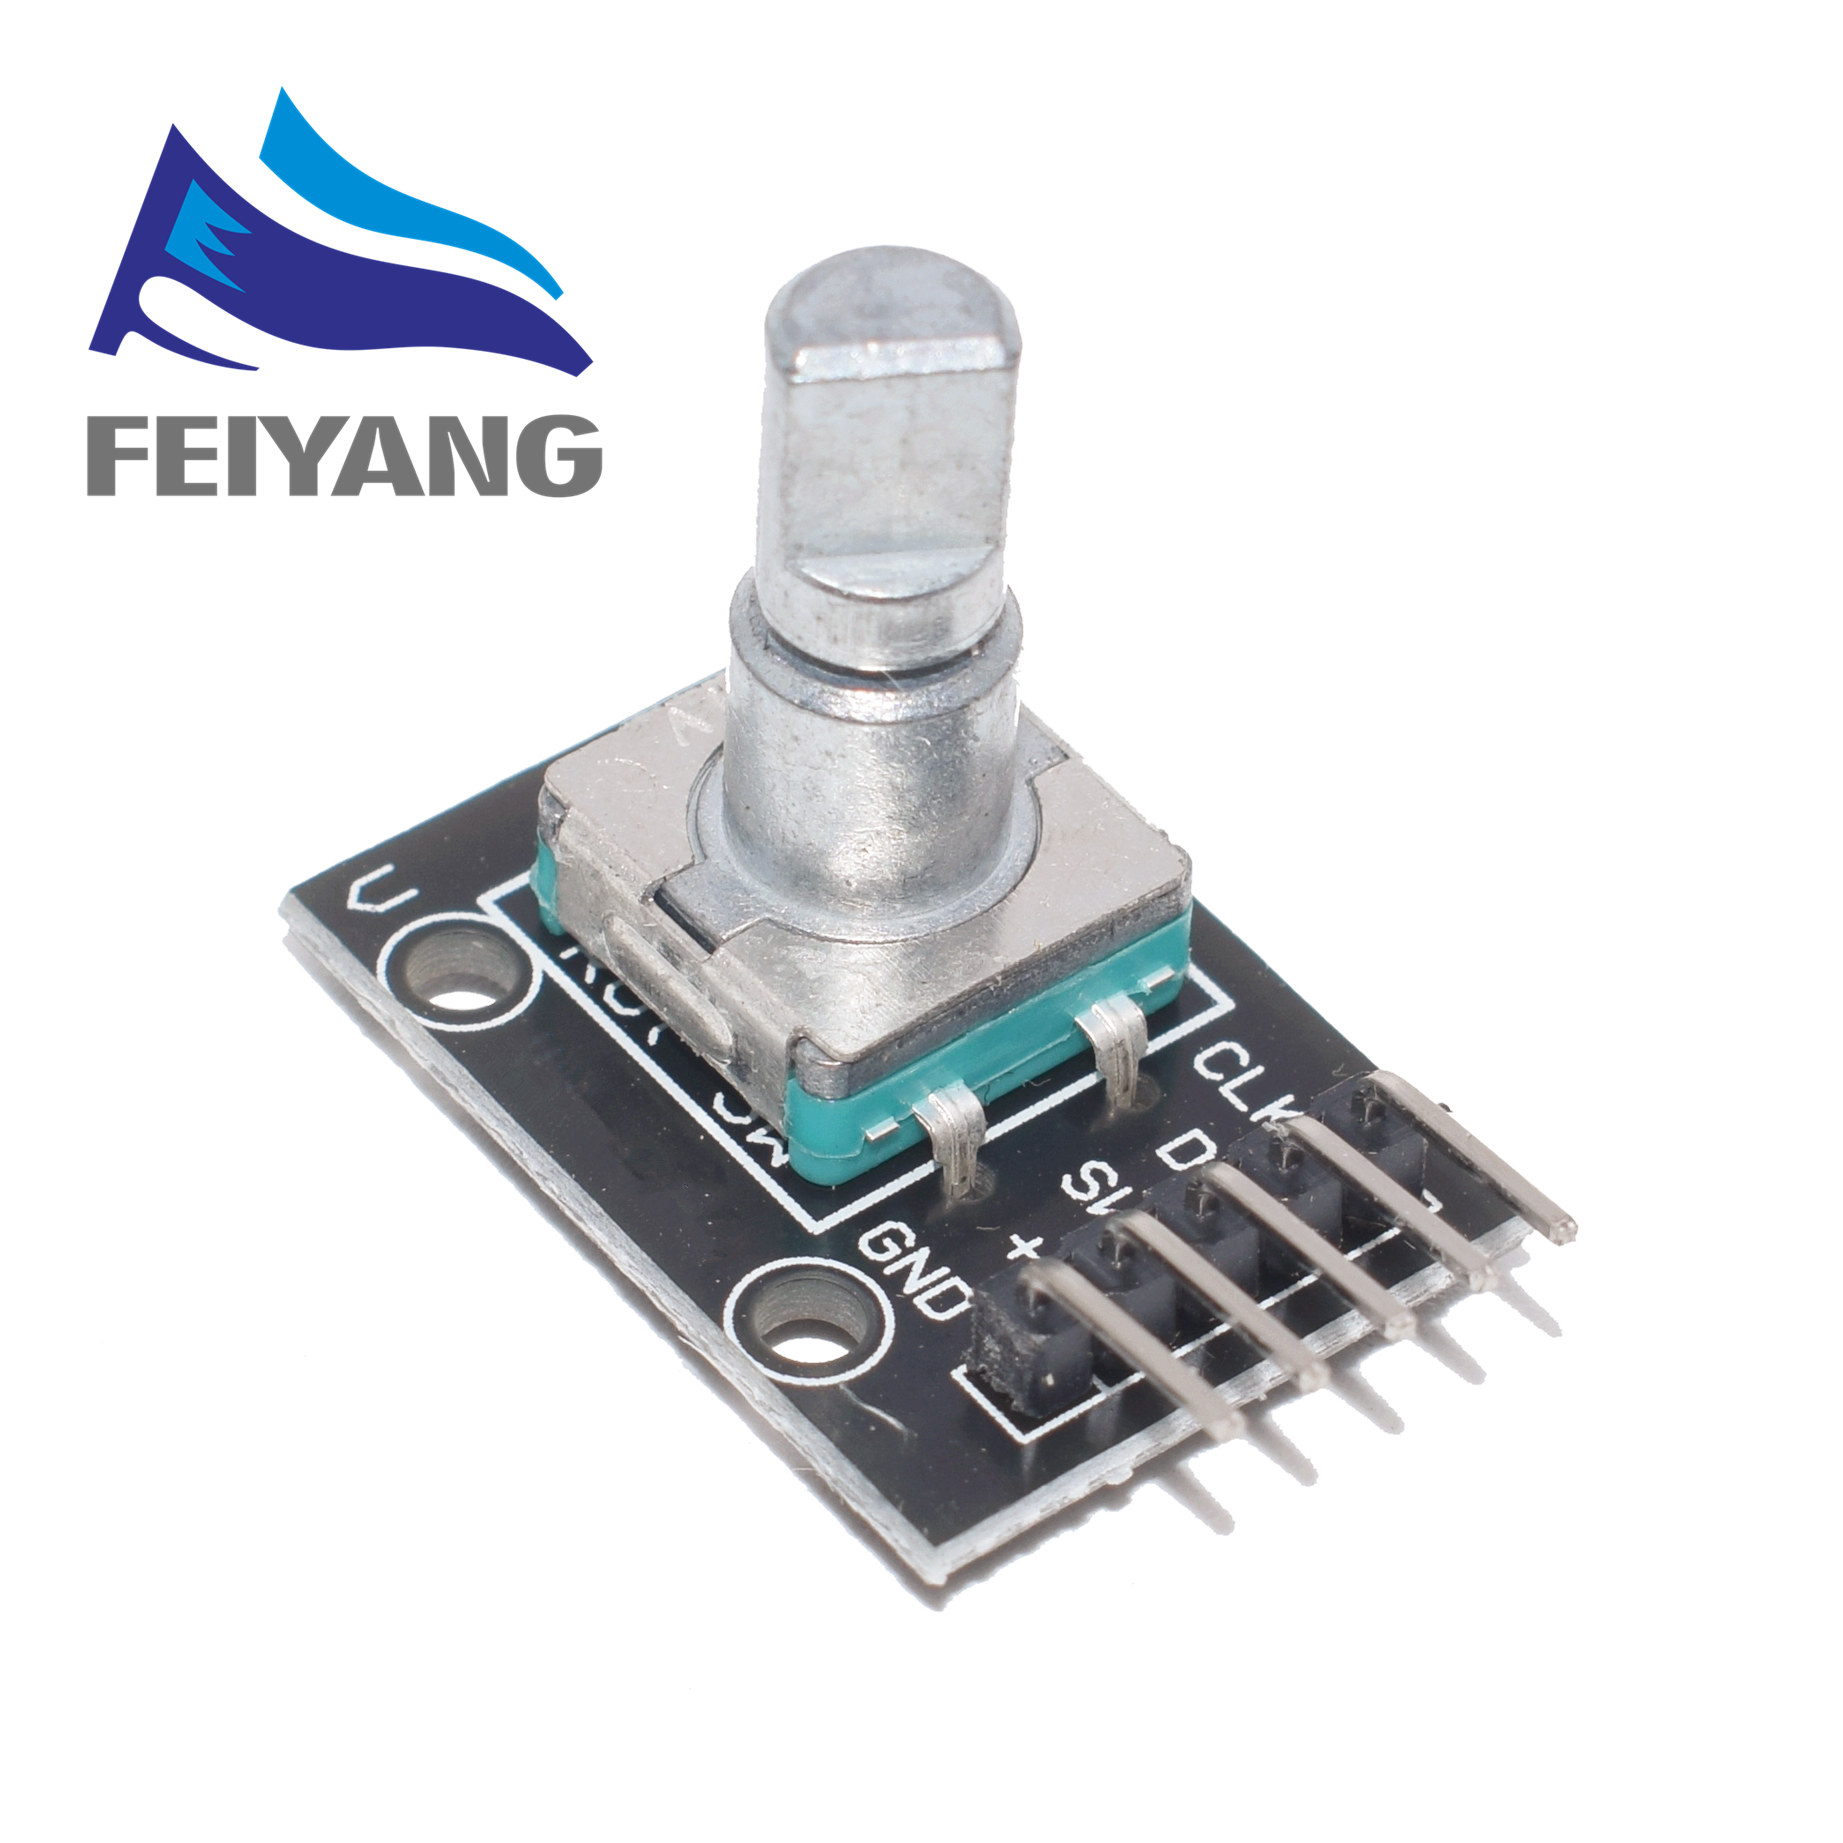 360 Degrees EC11 Rotary Encoder Module For Arduino Brick Sensor Switch Development Board KY-040 With Pins